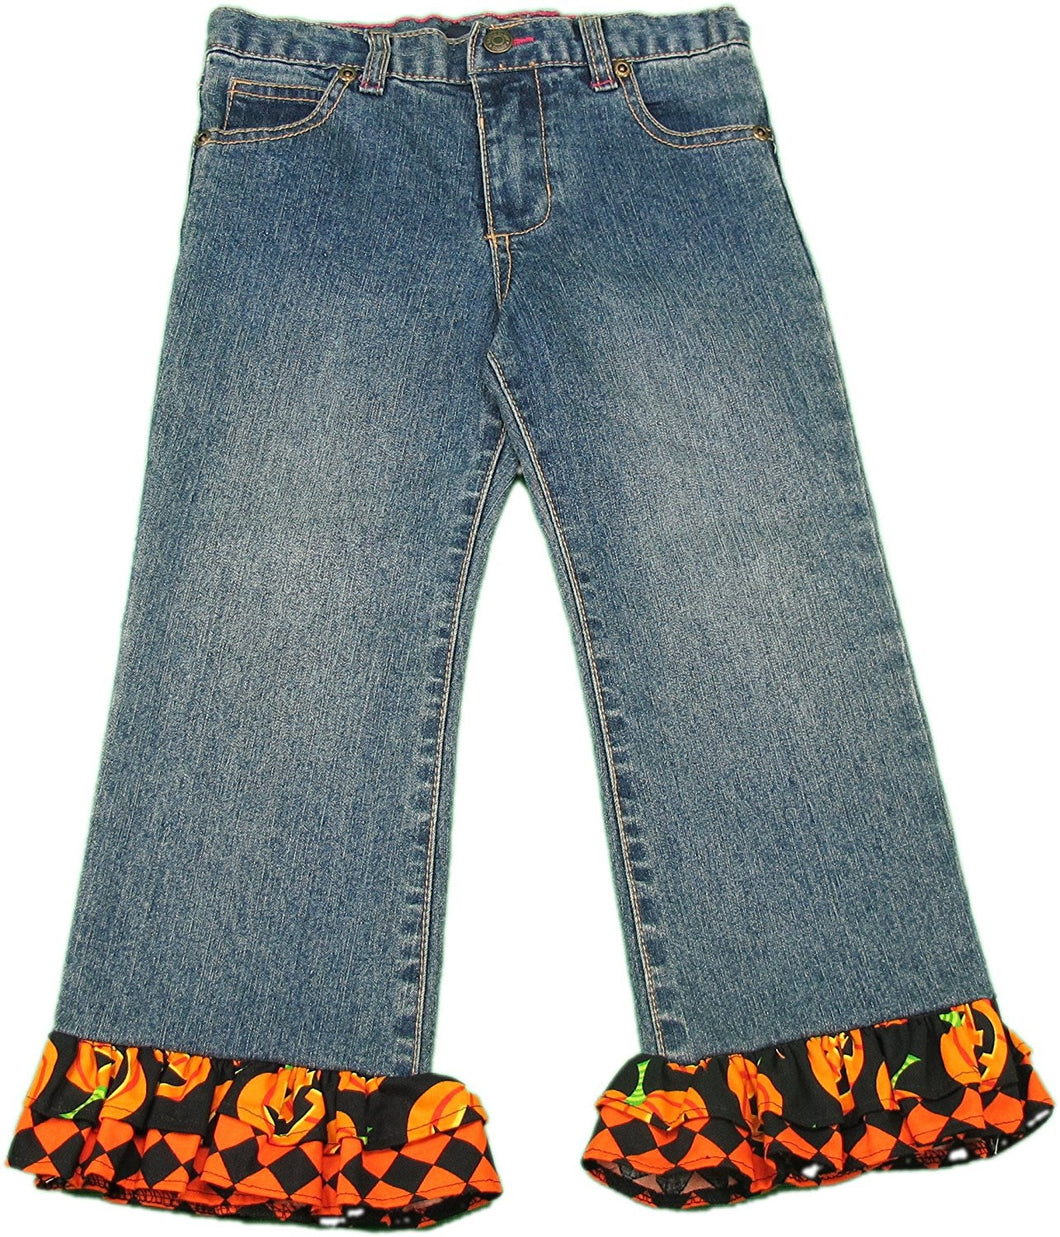 Faded Glory Girls Size 4T Halloween Decorated Jeans, Blue/Multi